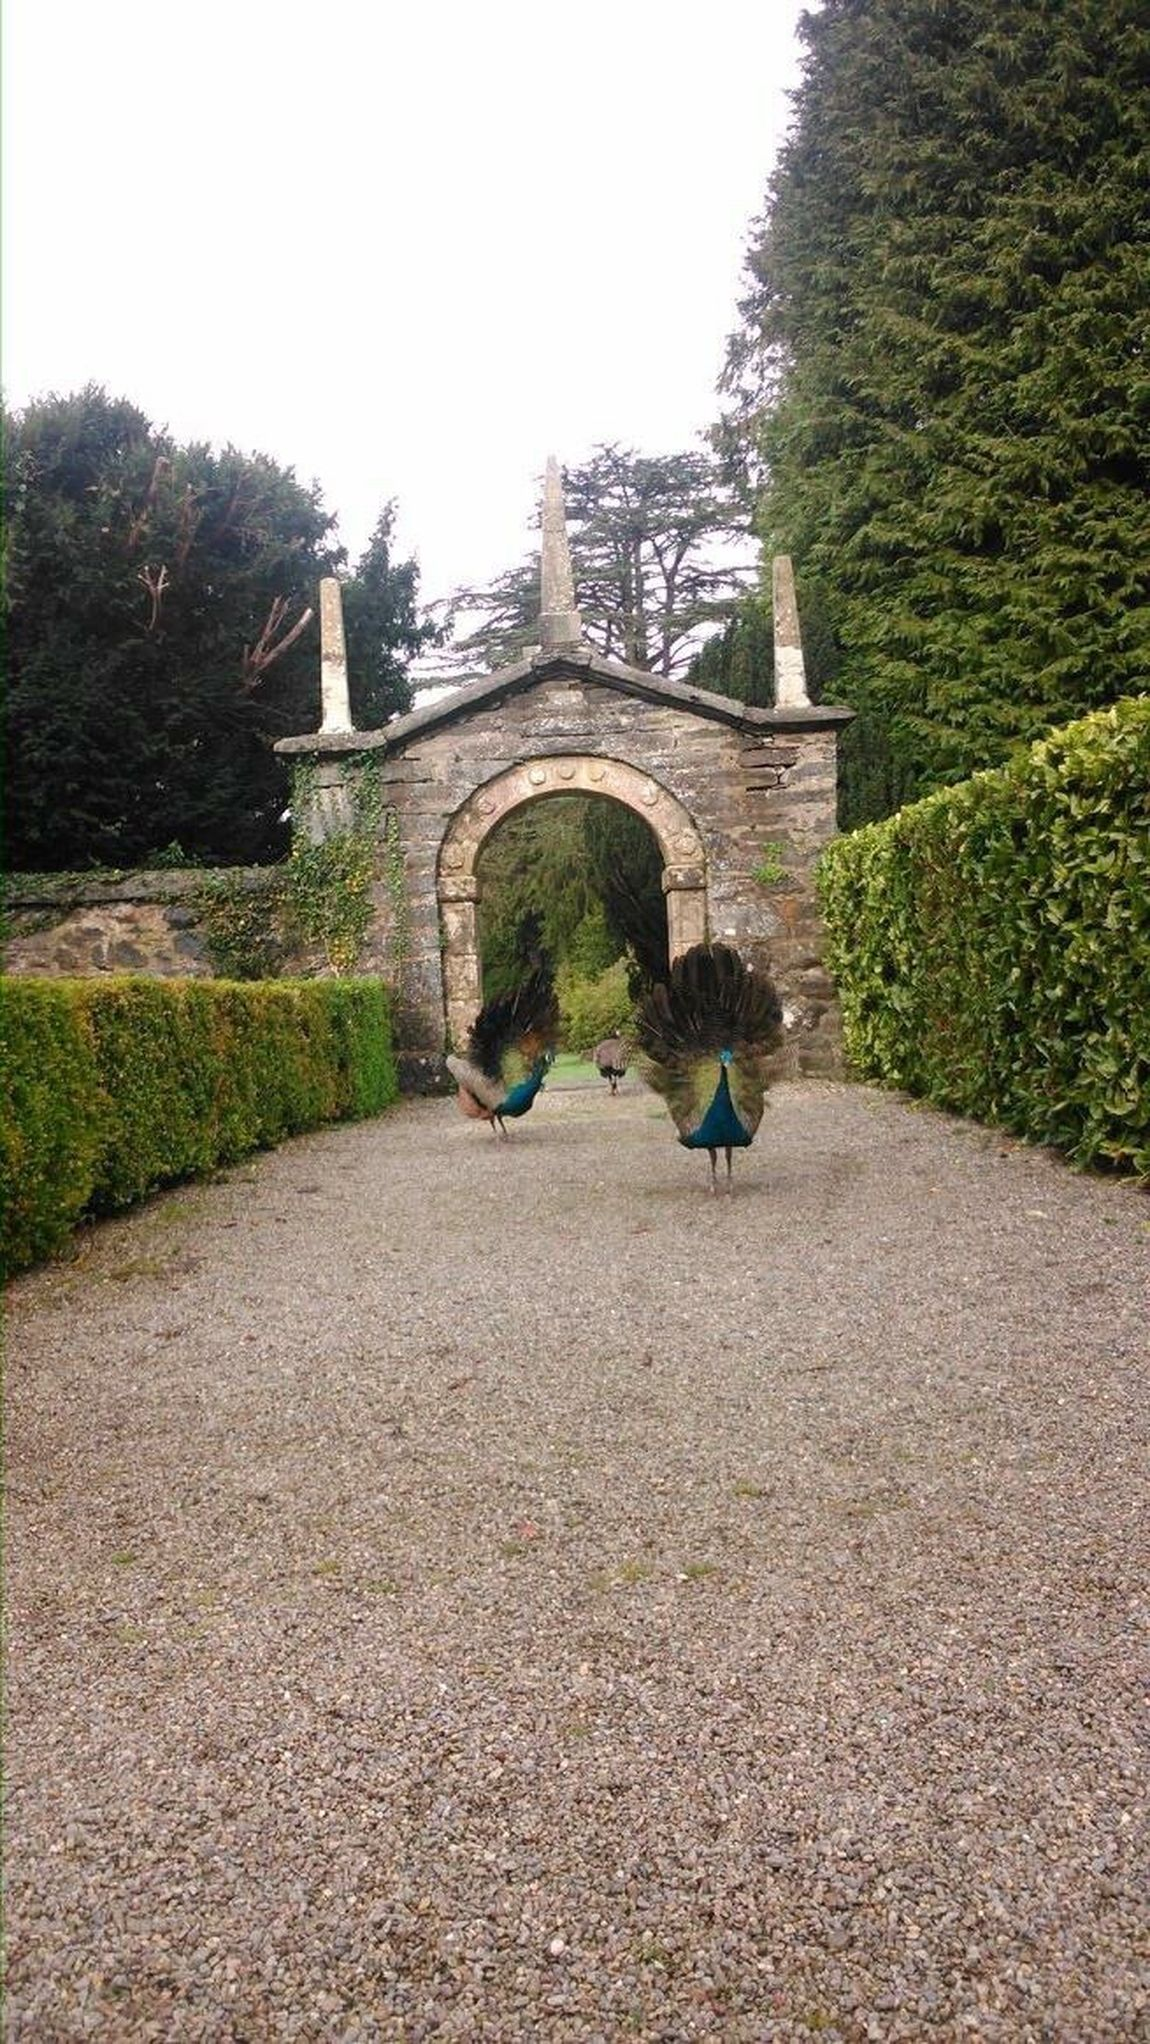 The Haunted Castle Peacocks Peacock Nature Peacock Nature On Your Doorstep The Castle Grounds Landscapes Landscape